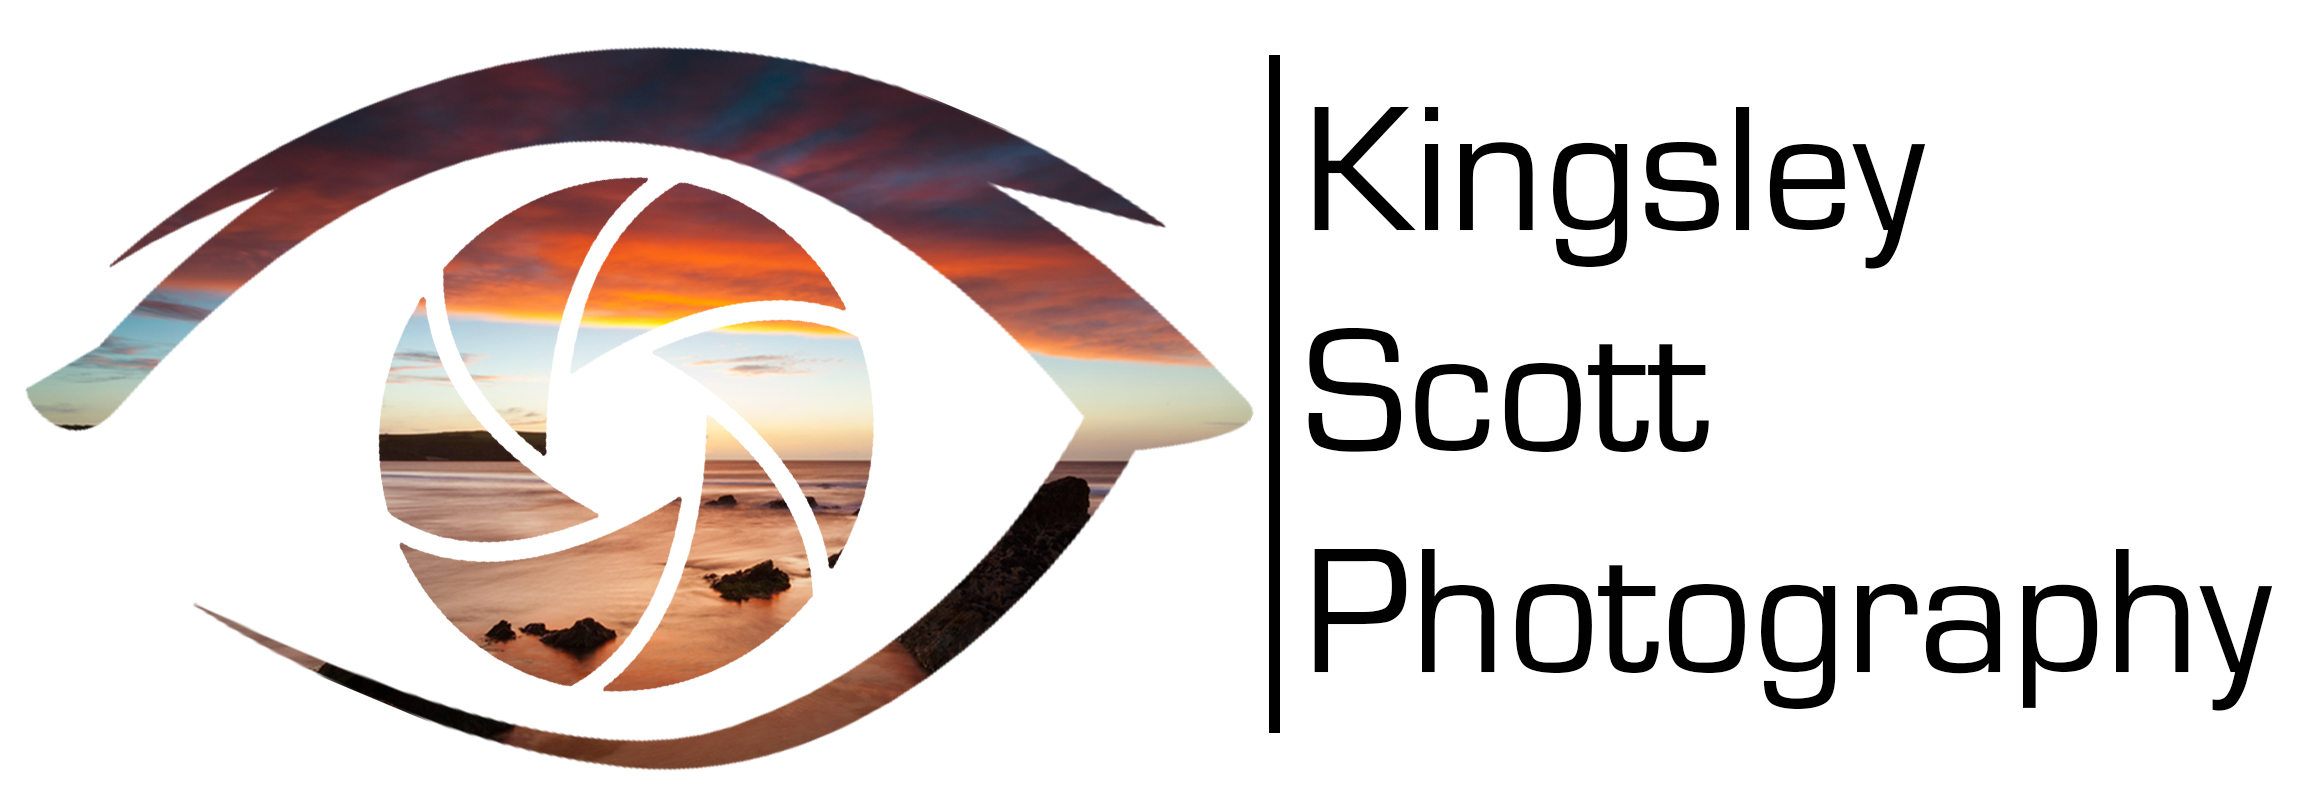 Kingsley Scott Photography